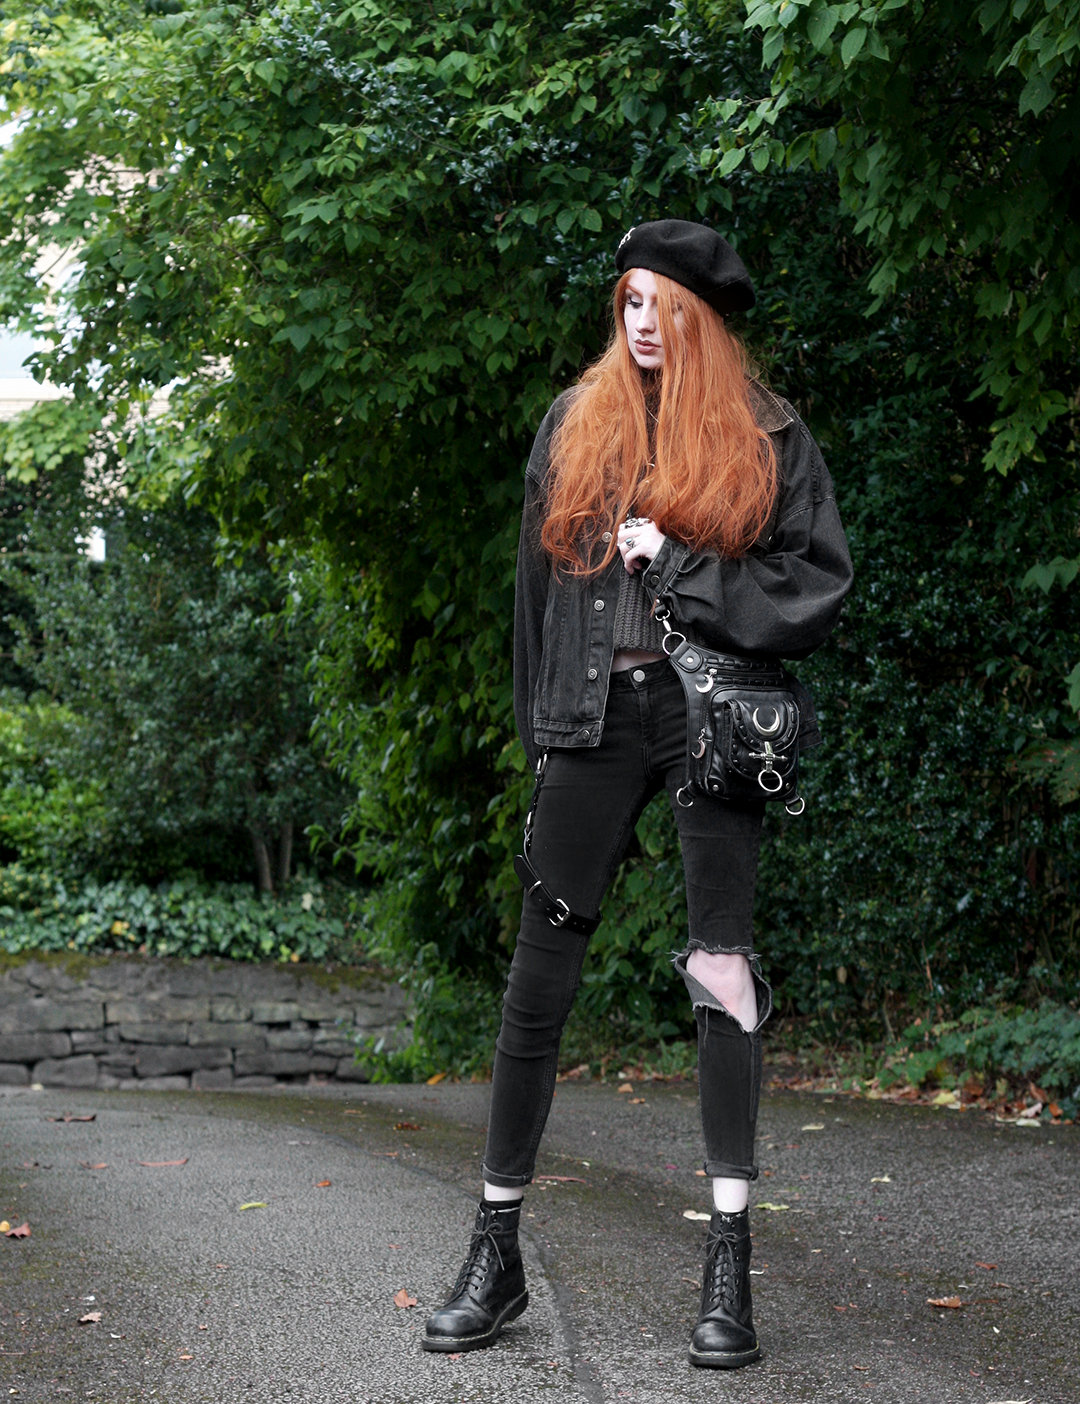 Double Denim - Olivia Emily wears Shikumi Beret, Asos Black Denim Jacket, Asos Ridley Ripped Jeans, Restyle Moon Bag, Dolls Kill Leg Harness and Dr Martens 1460 Docs